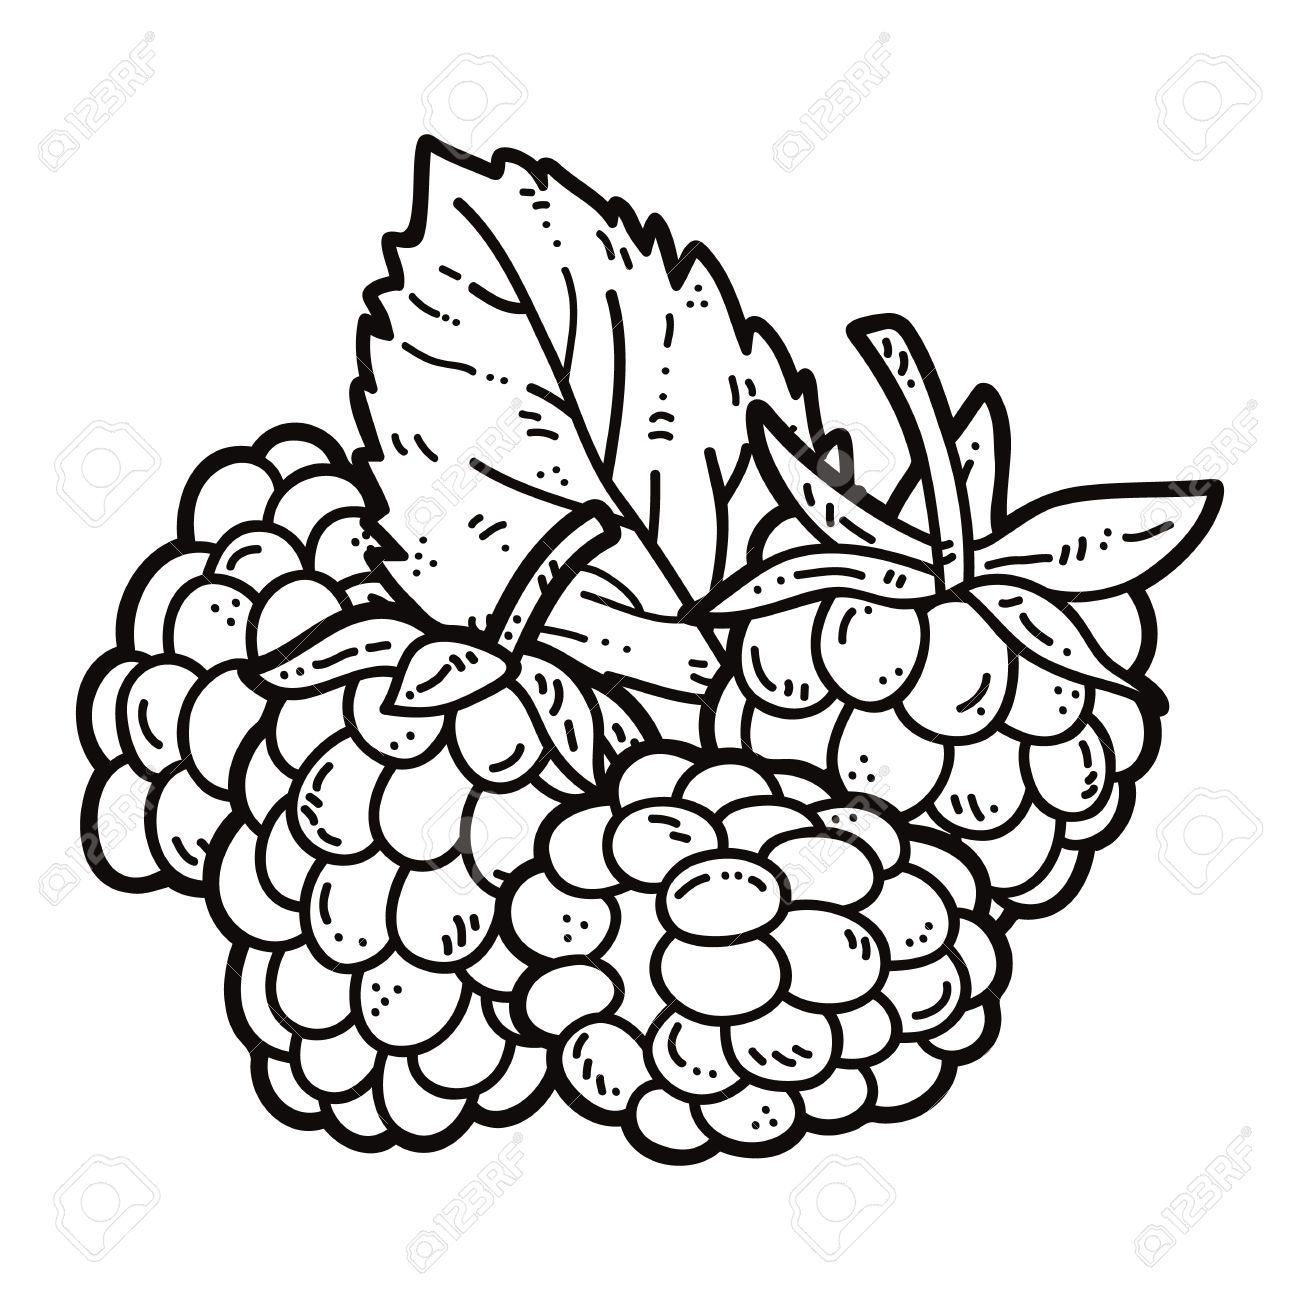 image royalty free download Blackberry drawing raspberry. Collection of clipart free